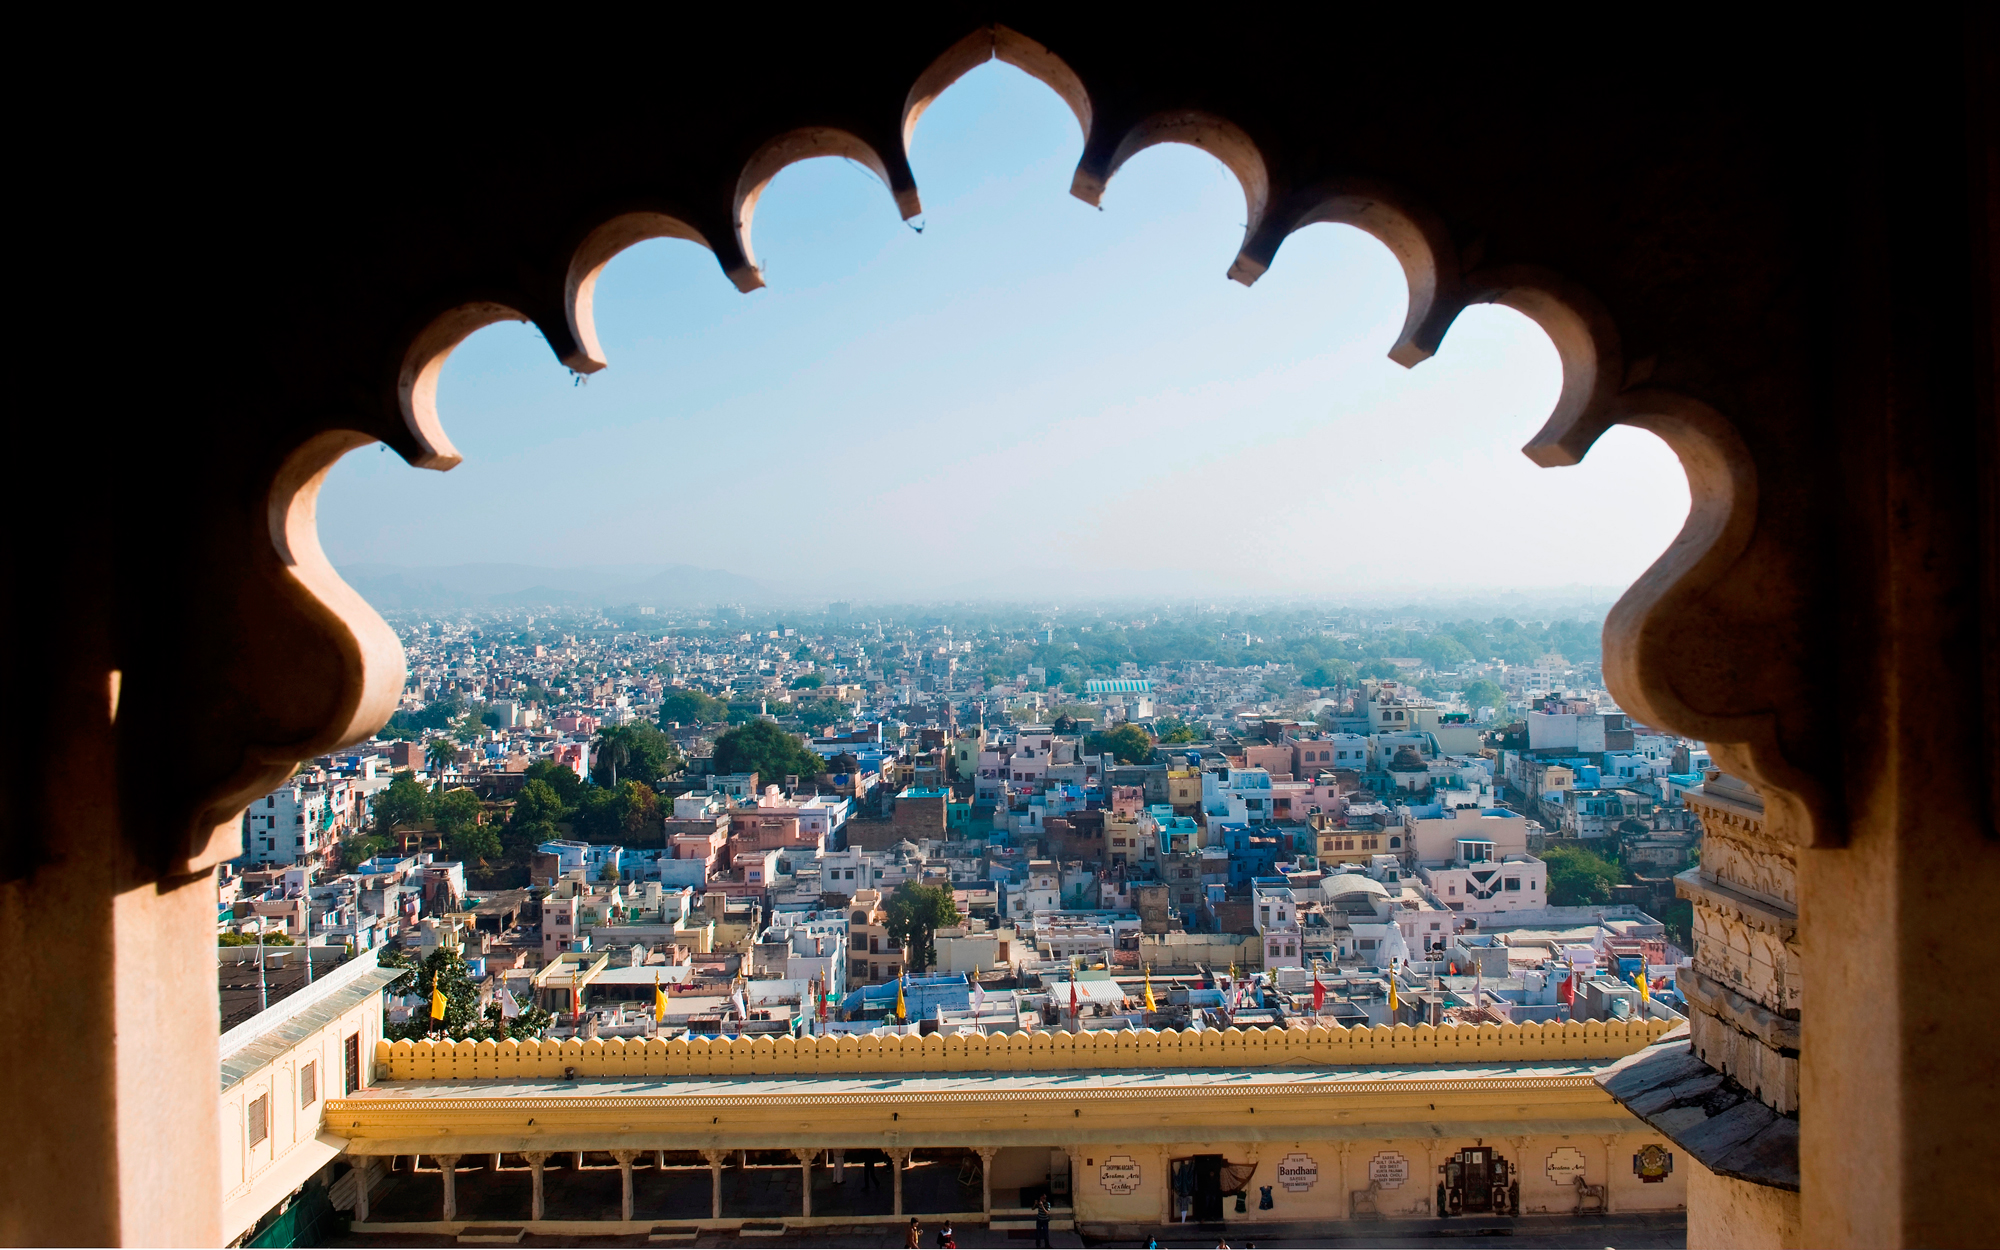 No. 8: Udaipur, India